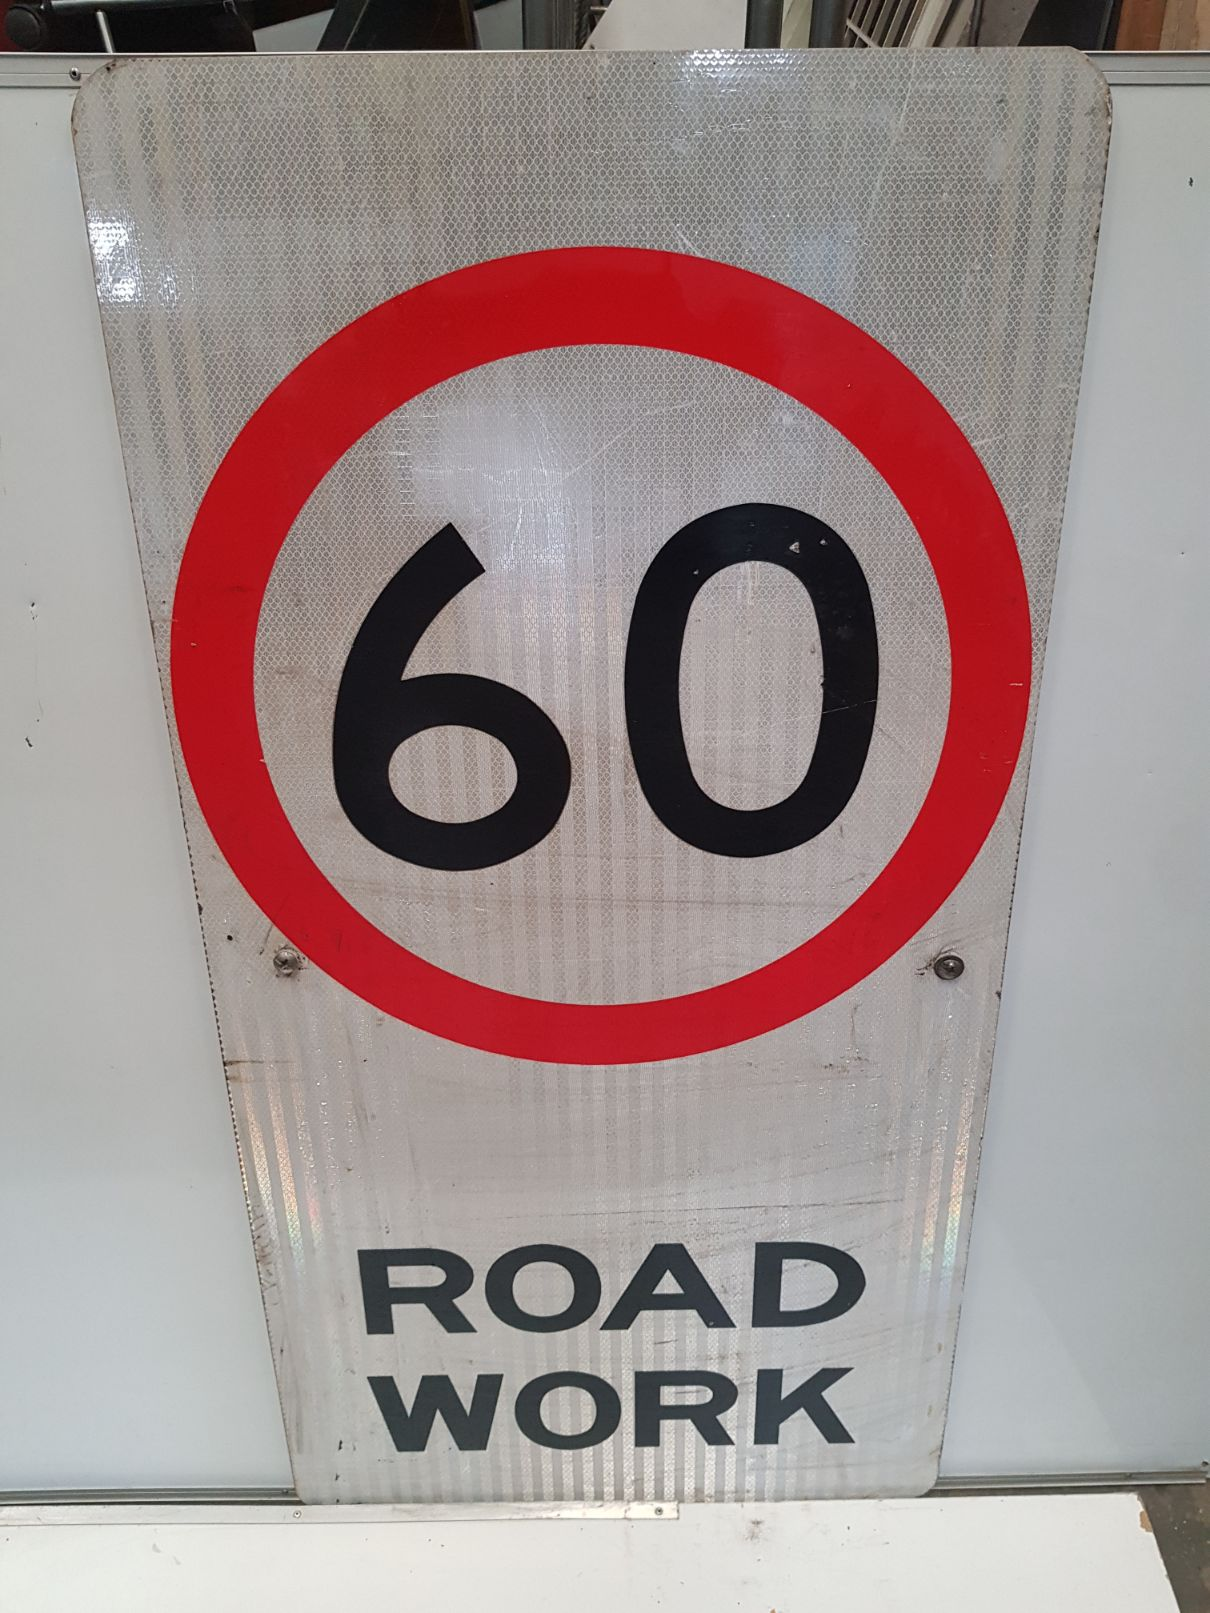 Roadwork Speed 60 Sign.jpg